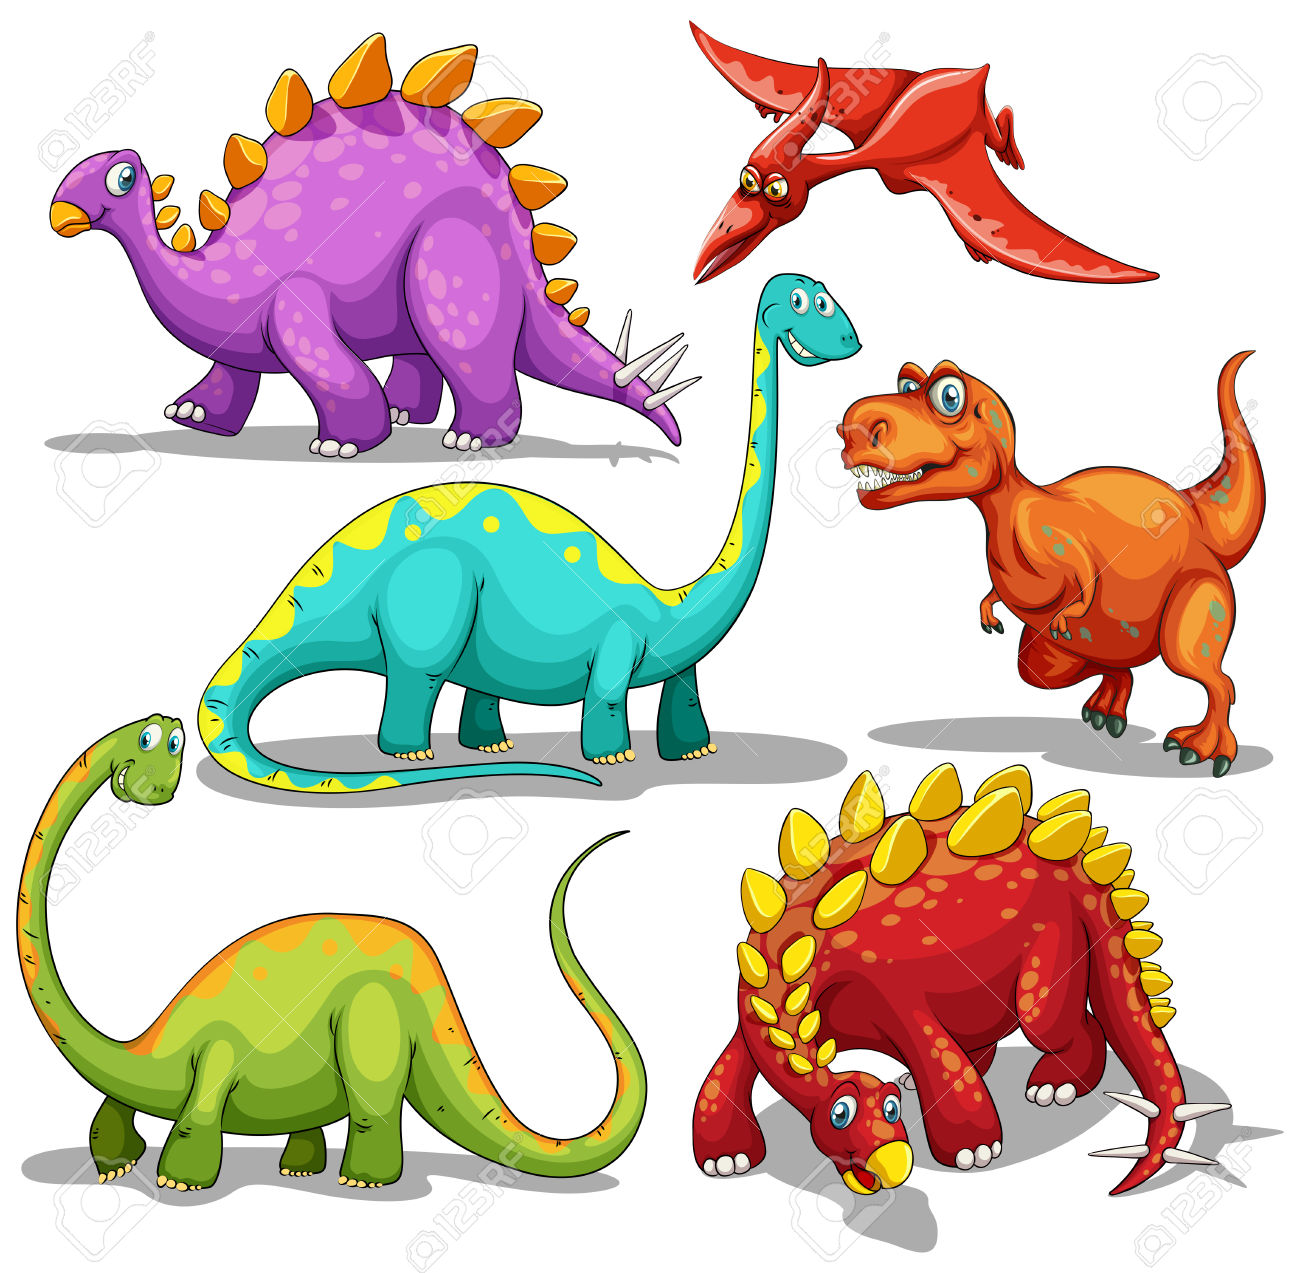 Dinosaurs cliparts hd vector transparent download Dinosaur Clipart | Free download best Dinosaur Clipart on ClipArtMag.com vector transparent download